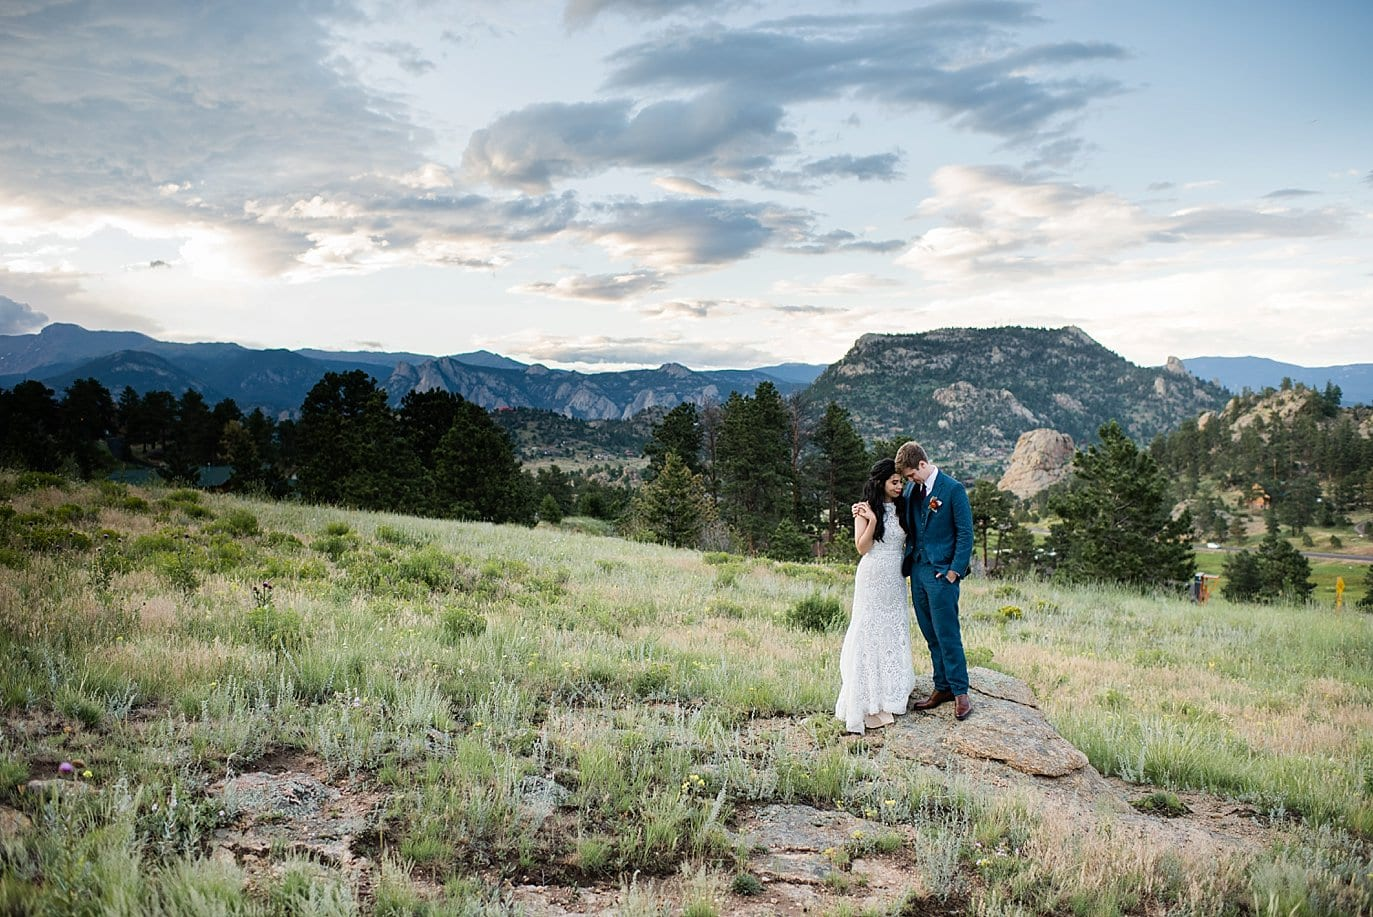 bride and groom at Rocky Mountain National Park 3M Curve wedding by RMNP Wedding Photography Jennie Crate